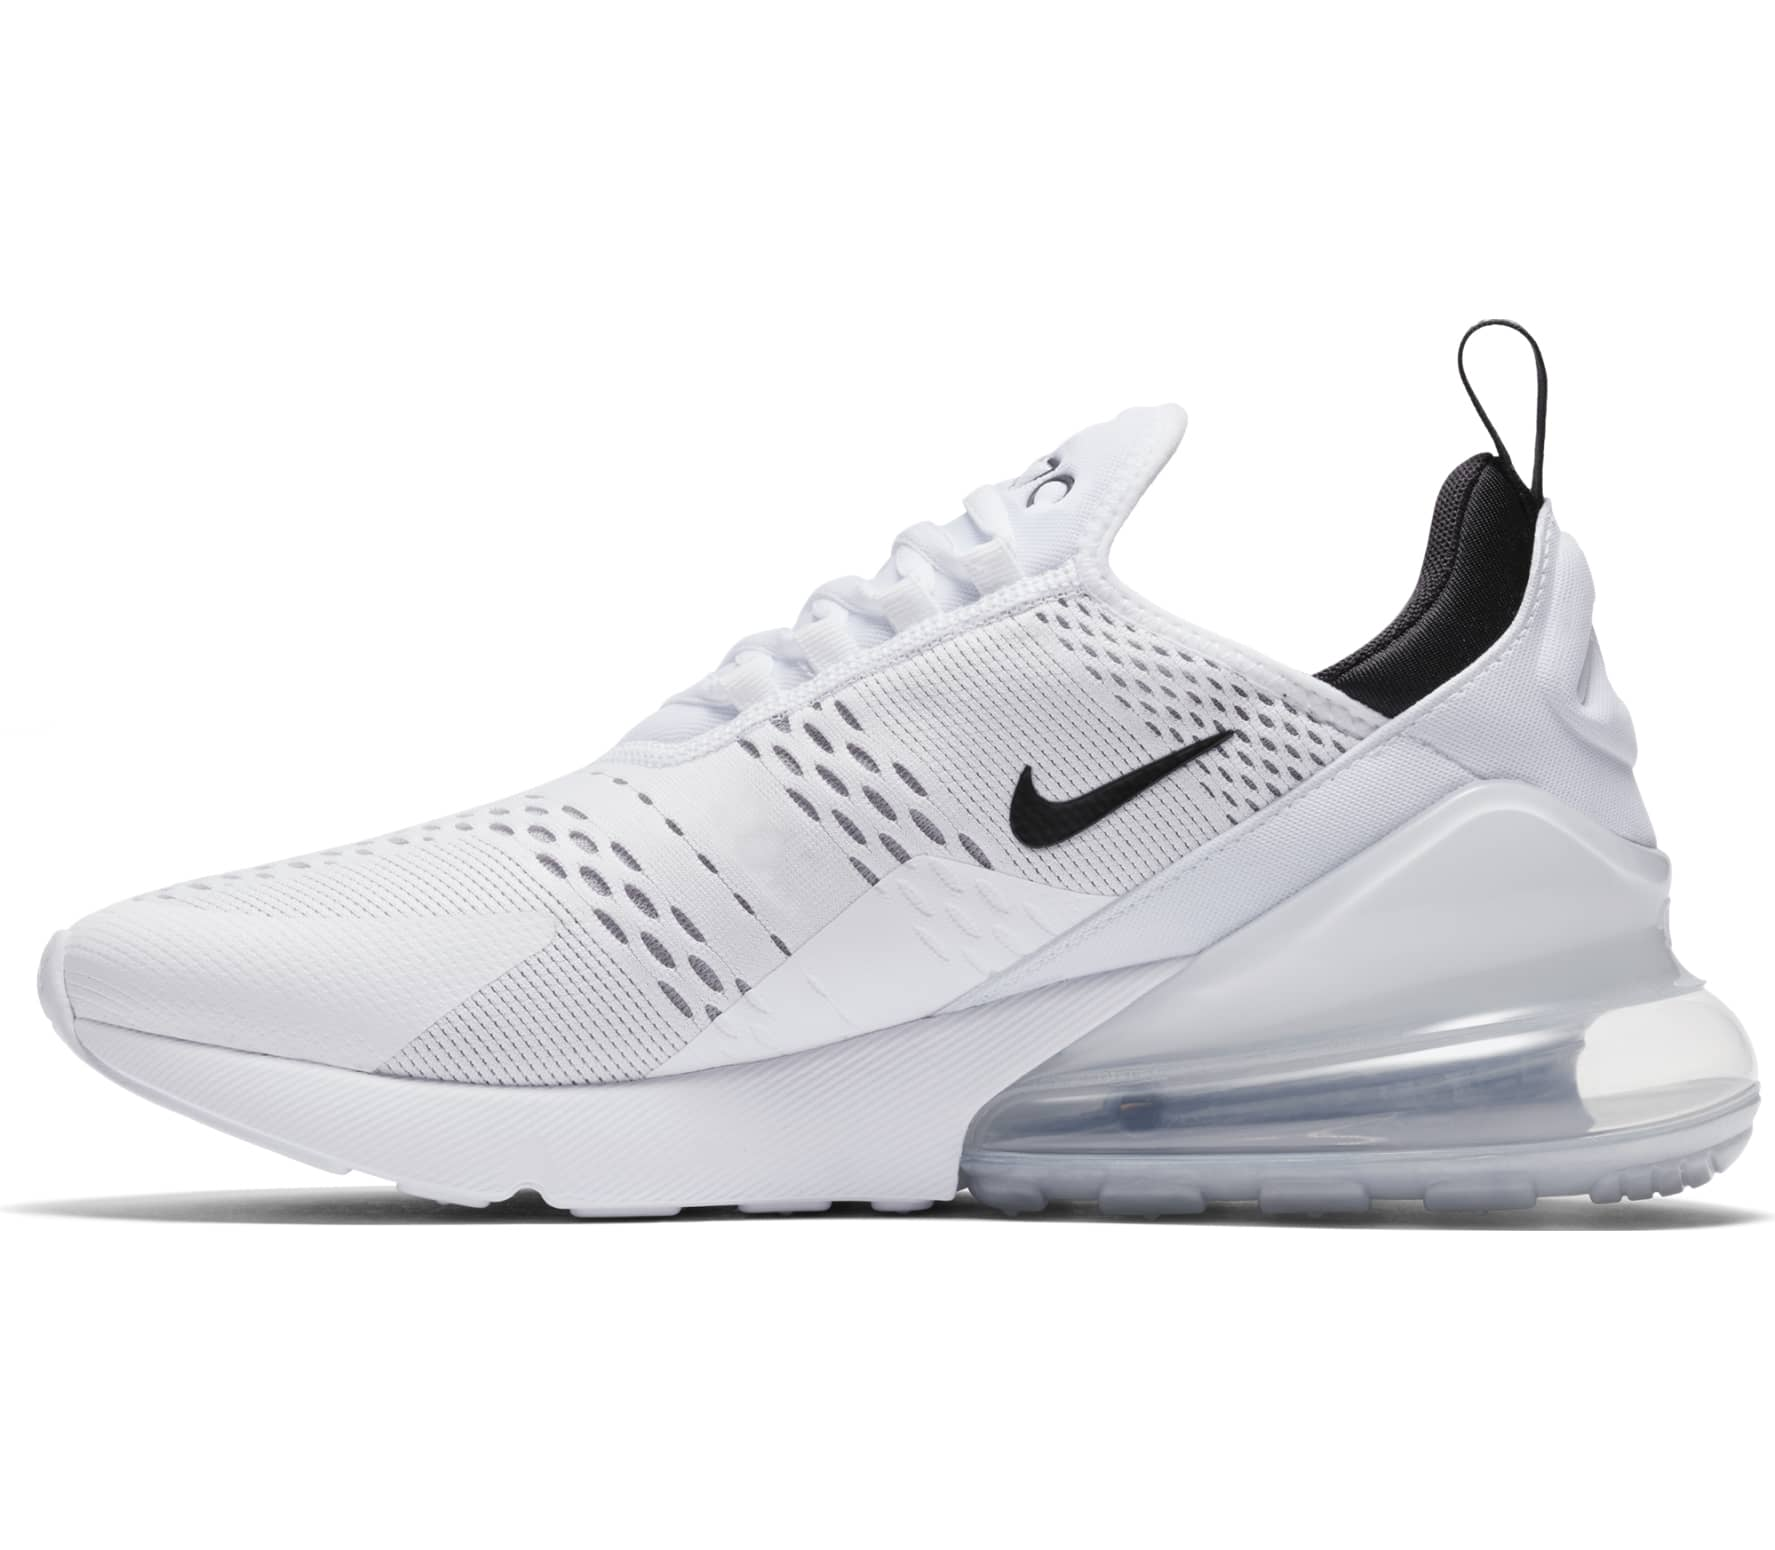 nike sportswear air max 270 herren sneaker wei online. Black Bedroom Furniture Sets. Home Design Ideas